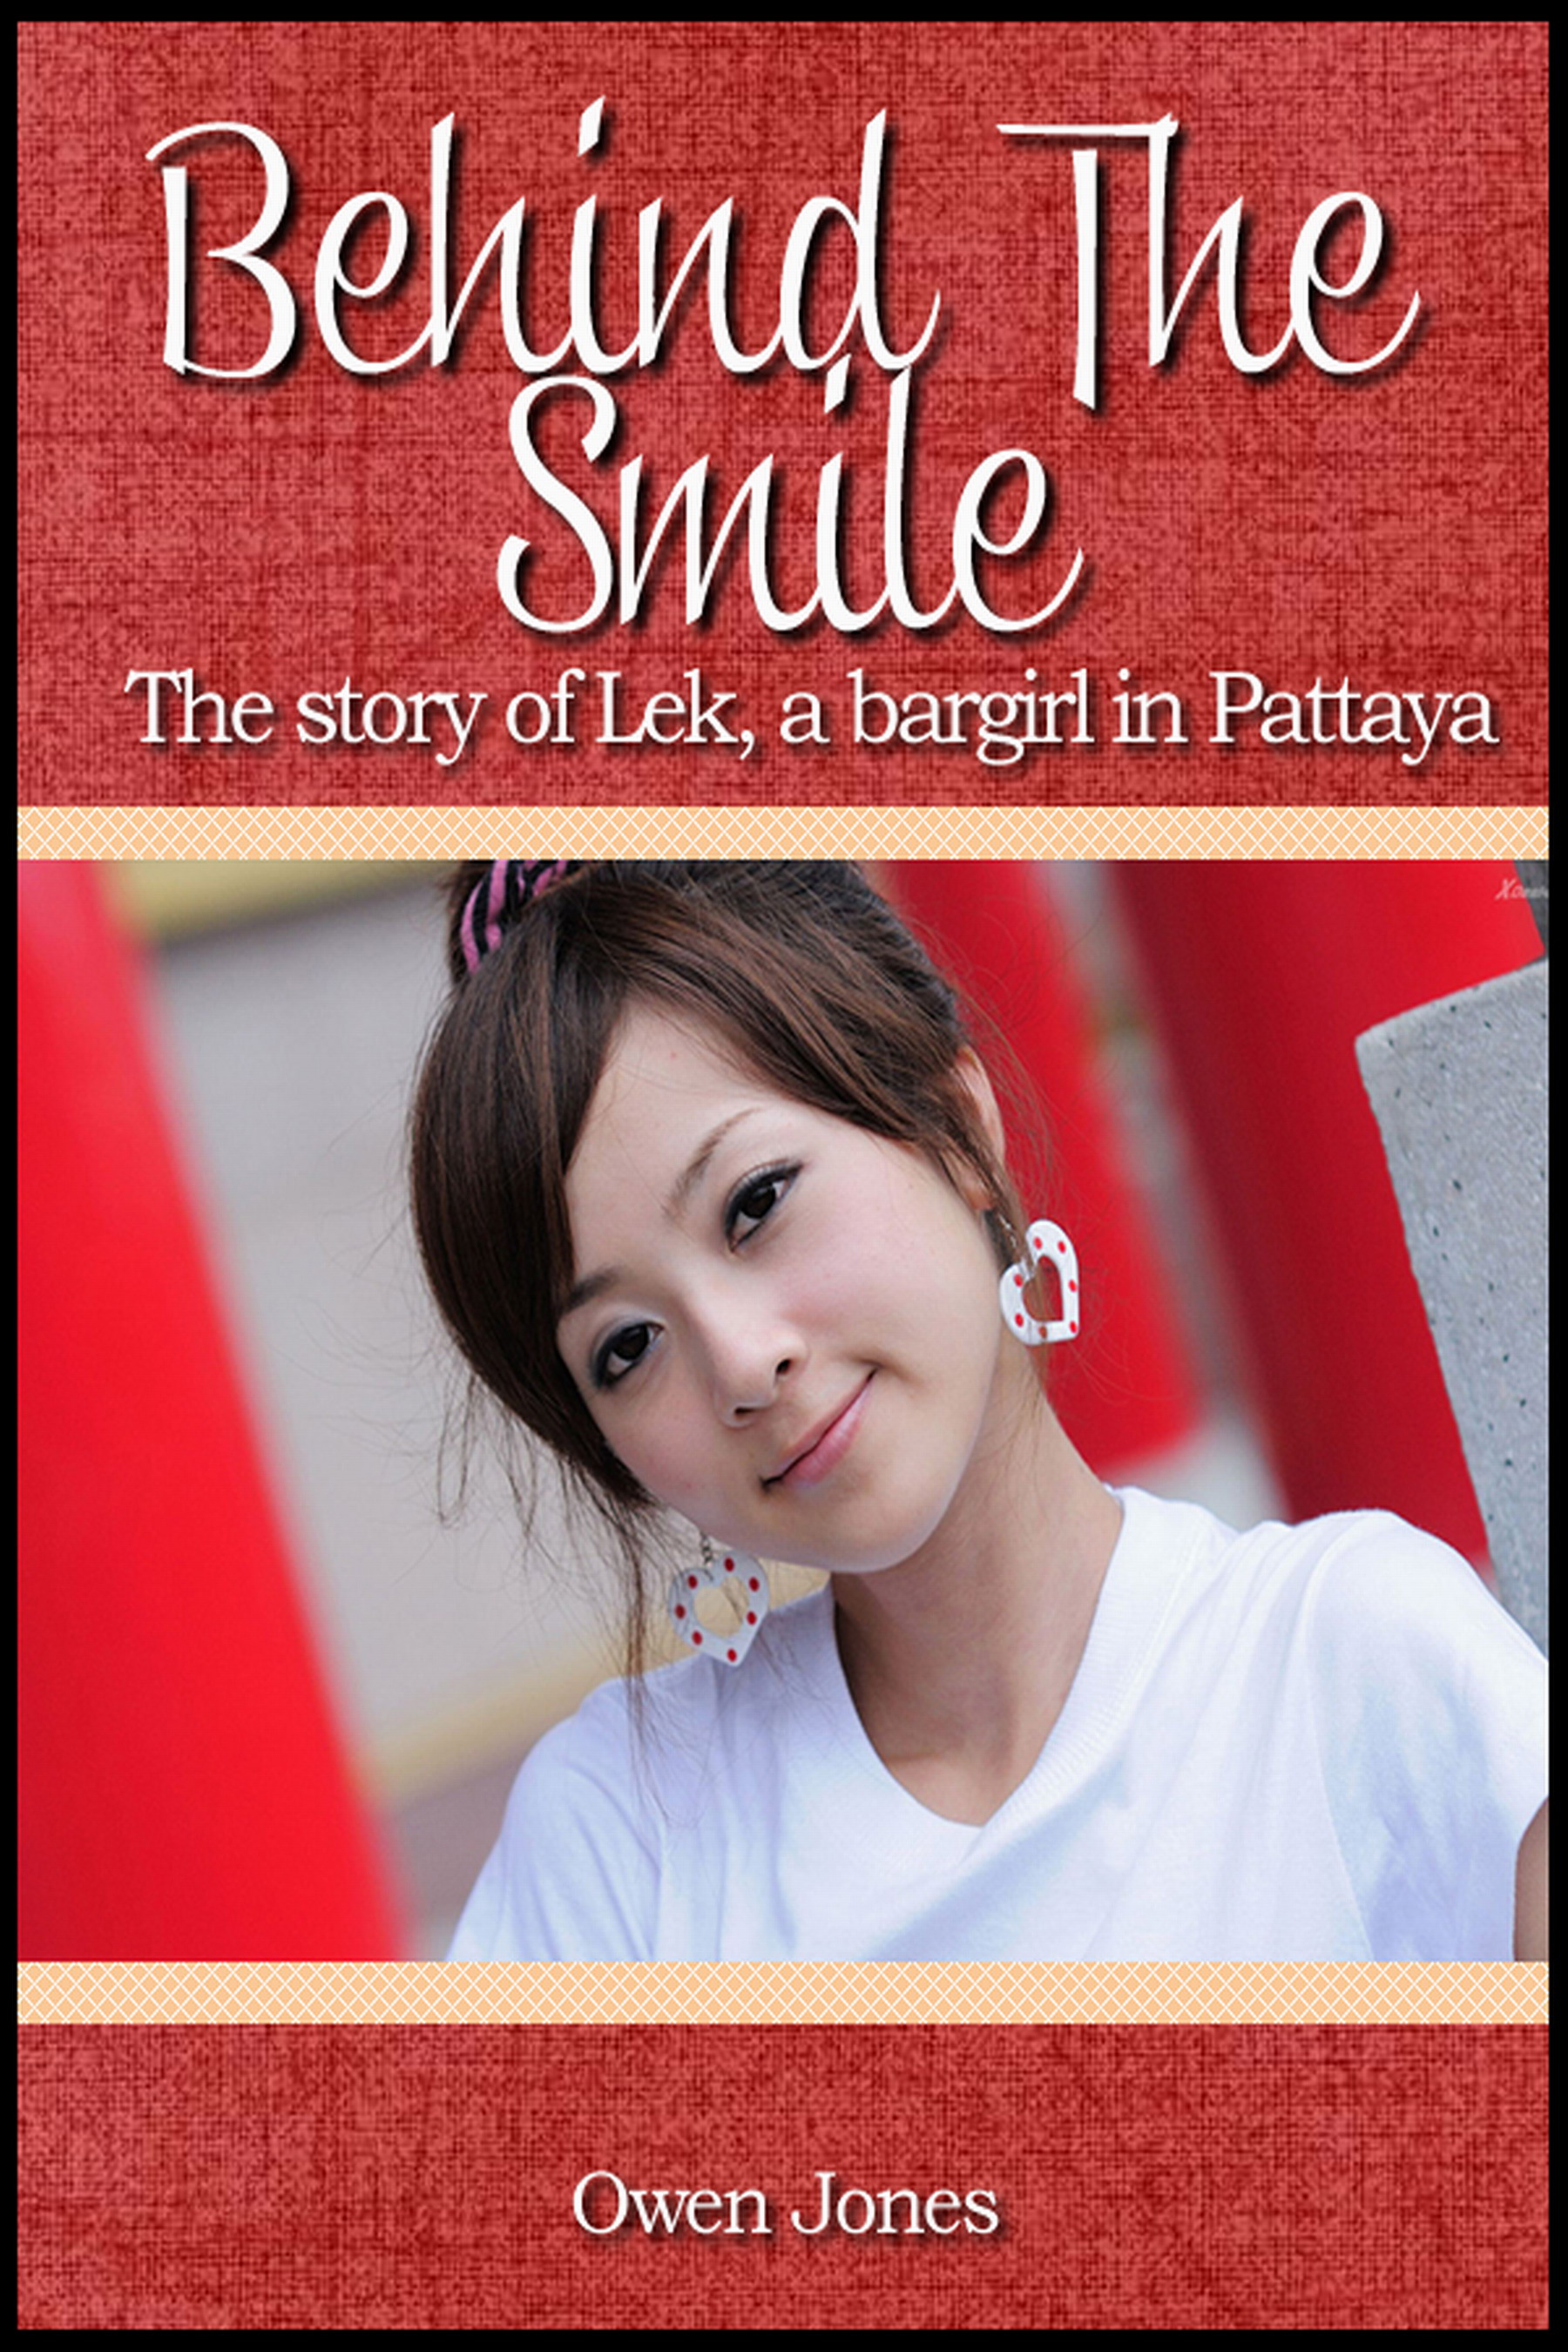 the story of Lek a bar girl inPatttays